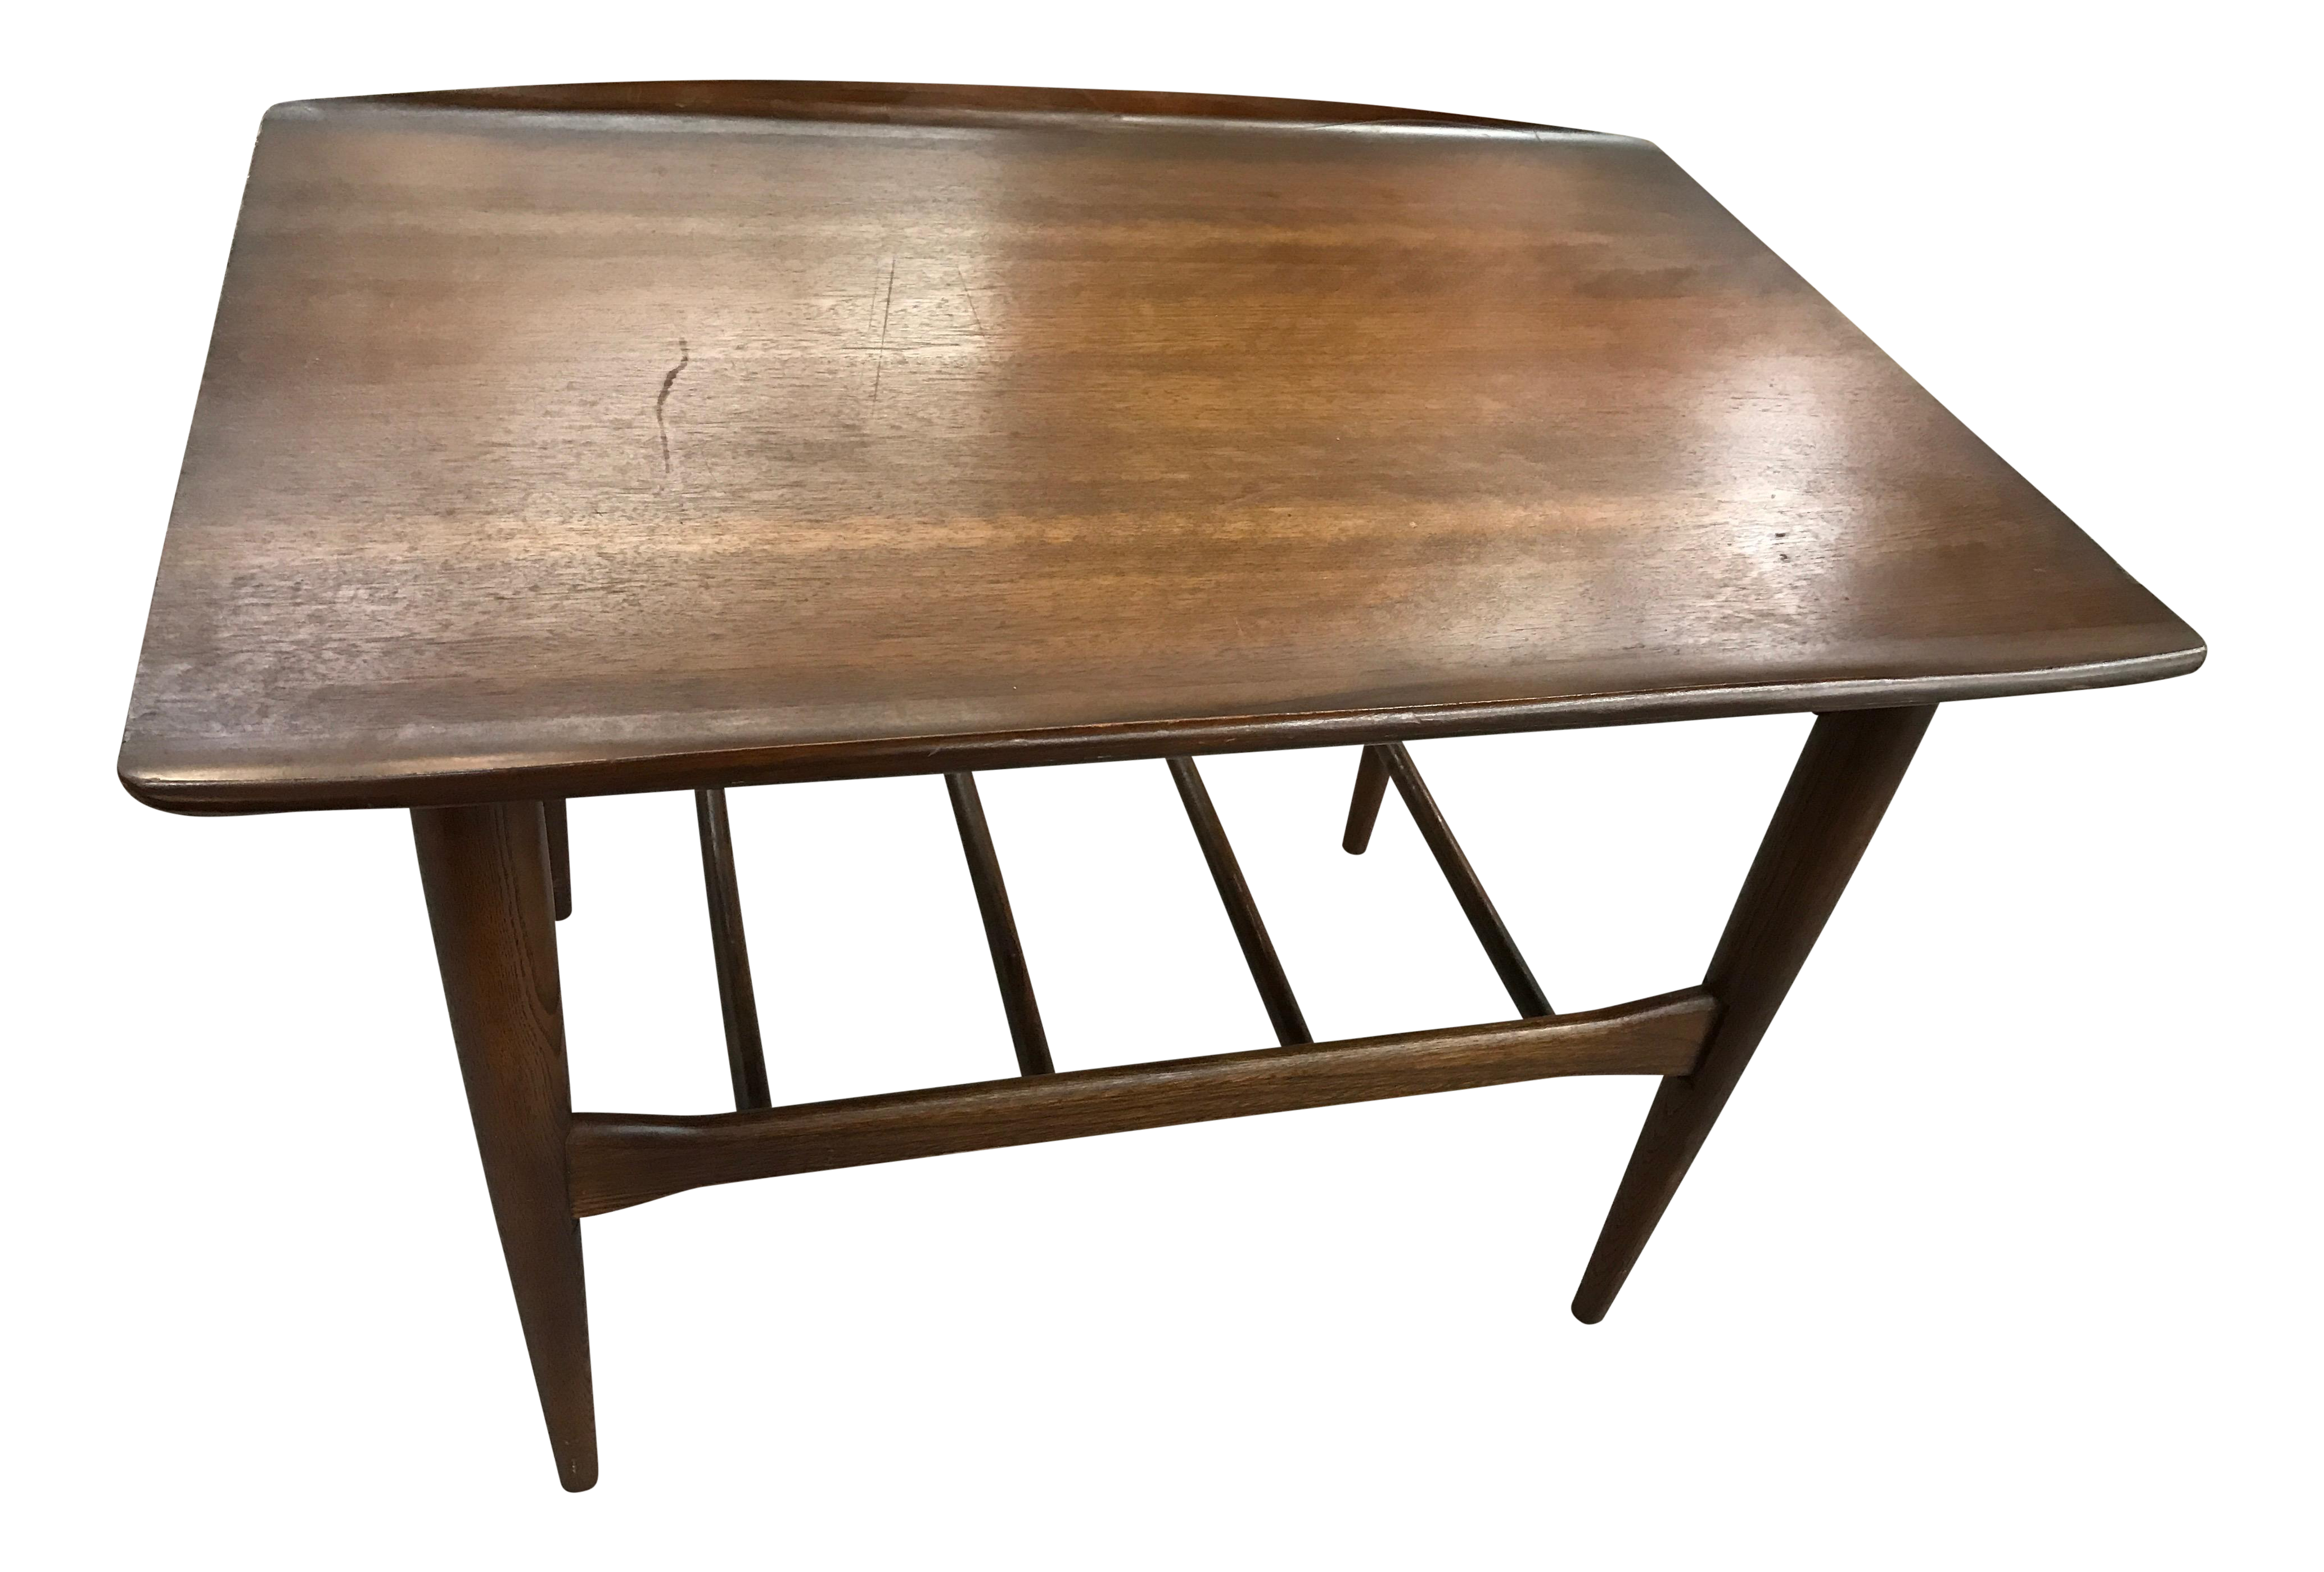 surfboard furniture. Surfboard Furniture. Vintage Bassett Furniture Industries In Danish Inspired Wood Style Side Table | O